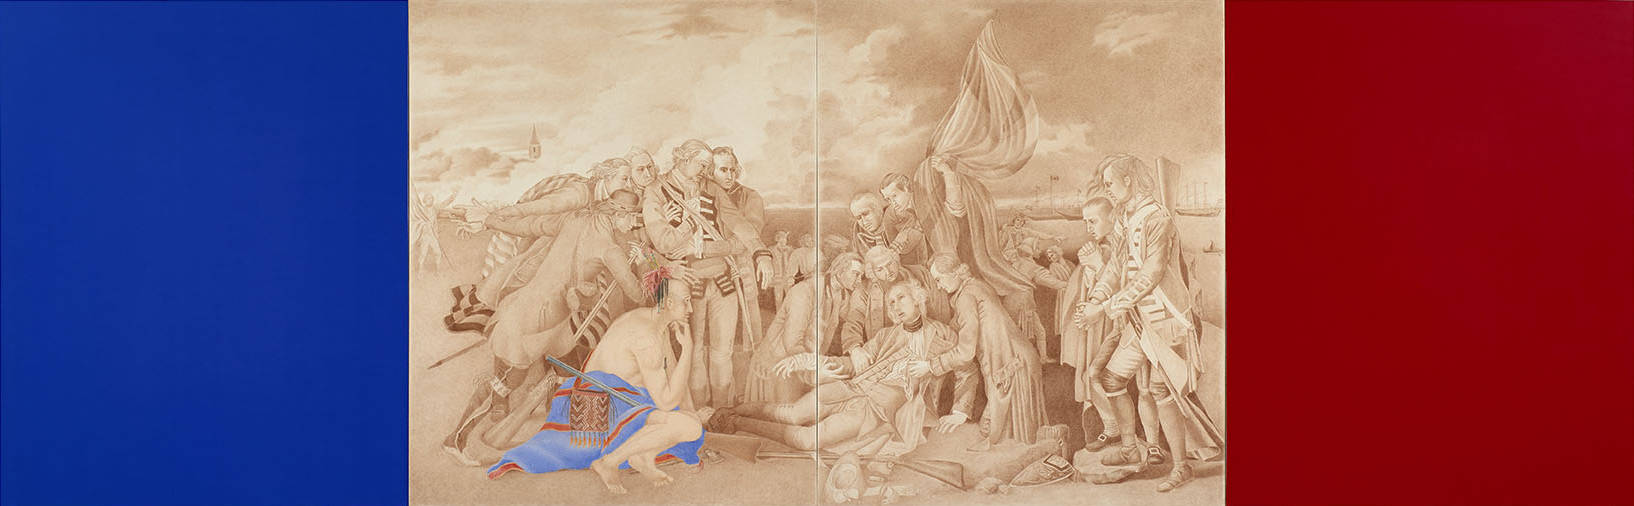 A sepia-toned drawing shows soldiers gathered around a wounded man on the ground. A half-naked Native brave with accoutrements tinged in red and blue is crouched at the man's feet. The drawing is flanked by rectangles, blue on the left and red on the right, like a tricolour flag.